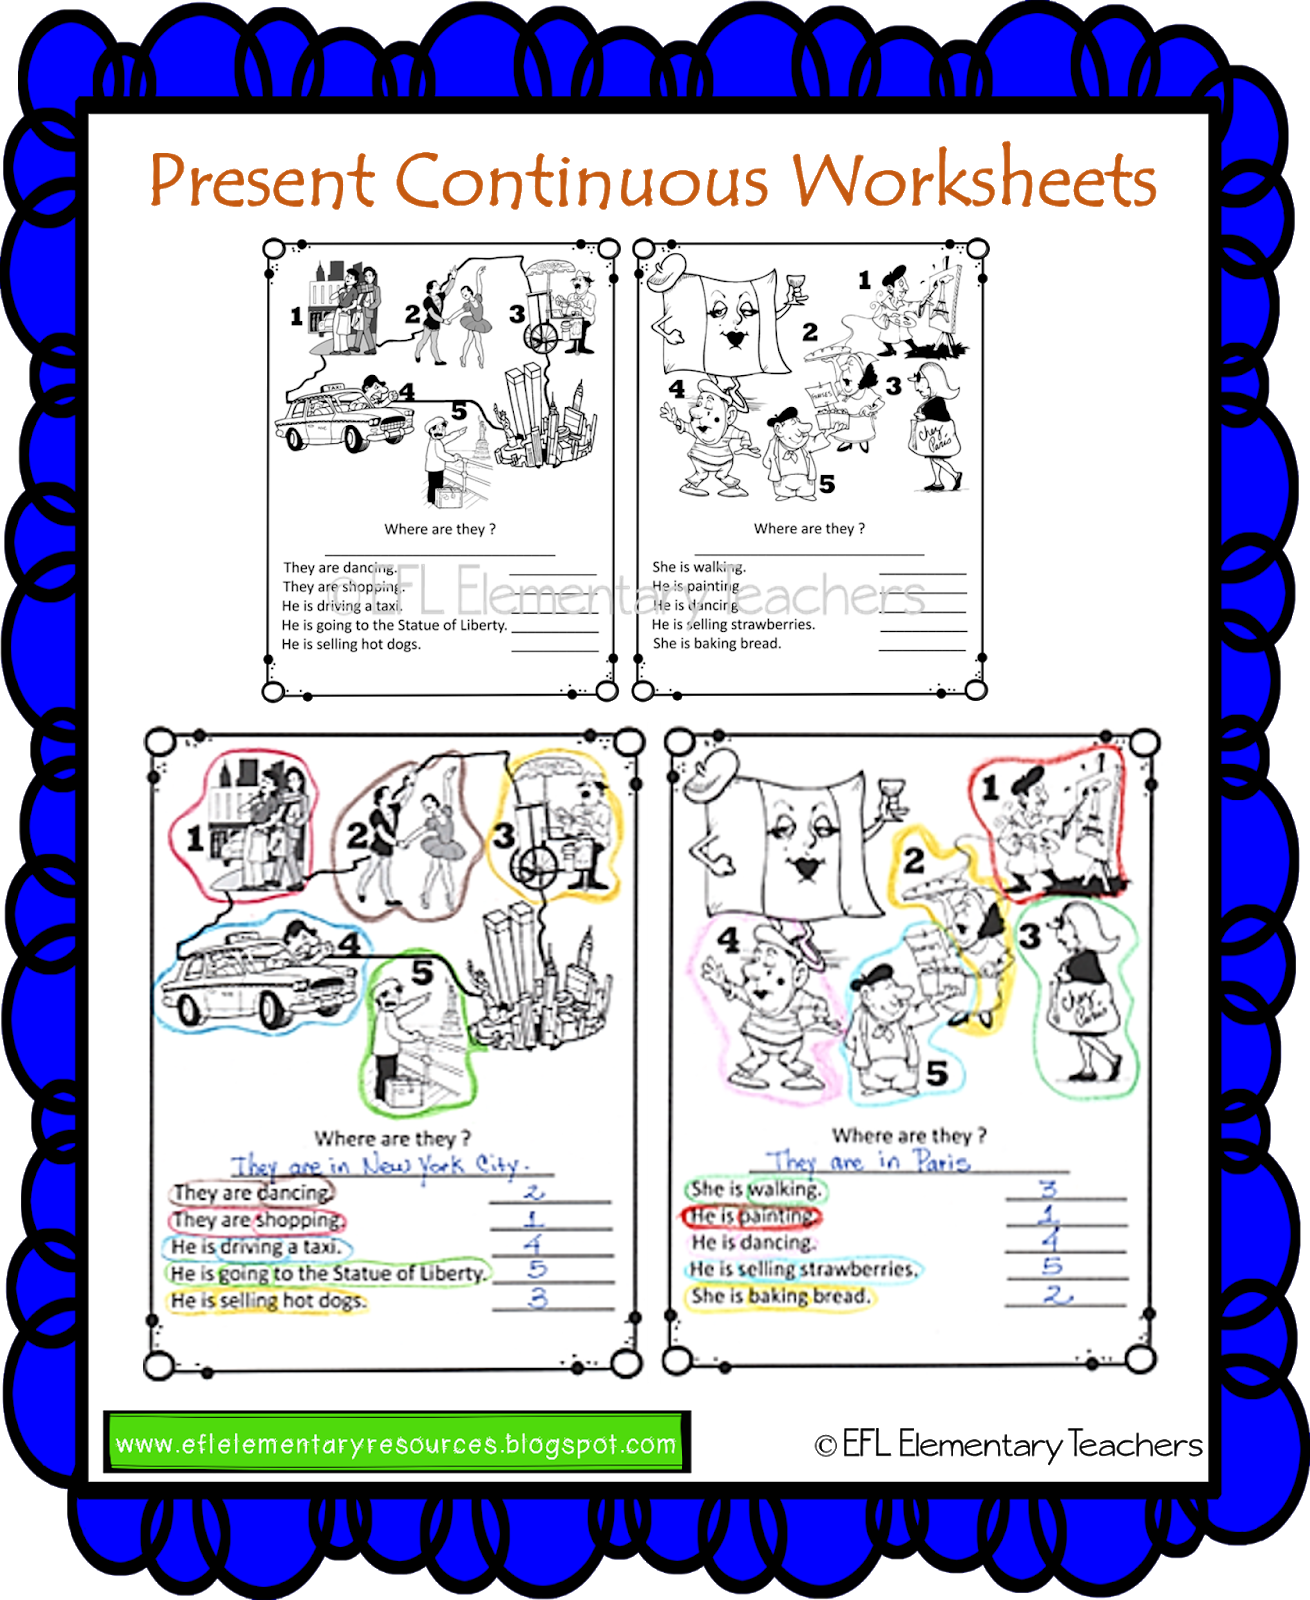 Efl Elementary Teachers Present Continuous Part 2